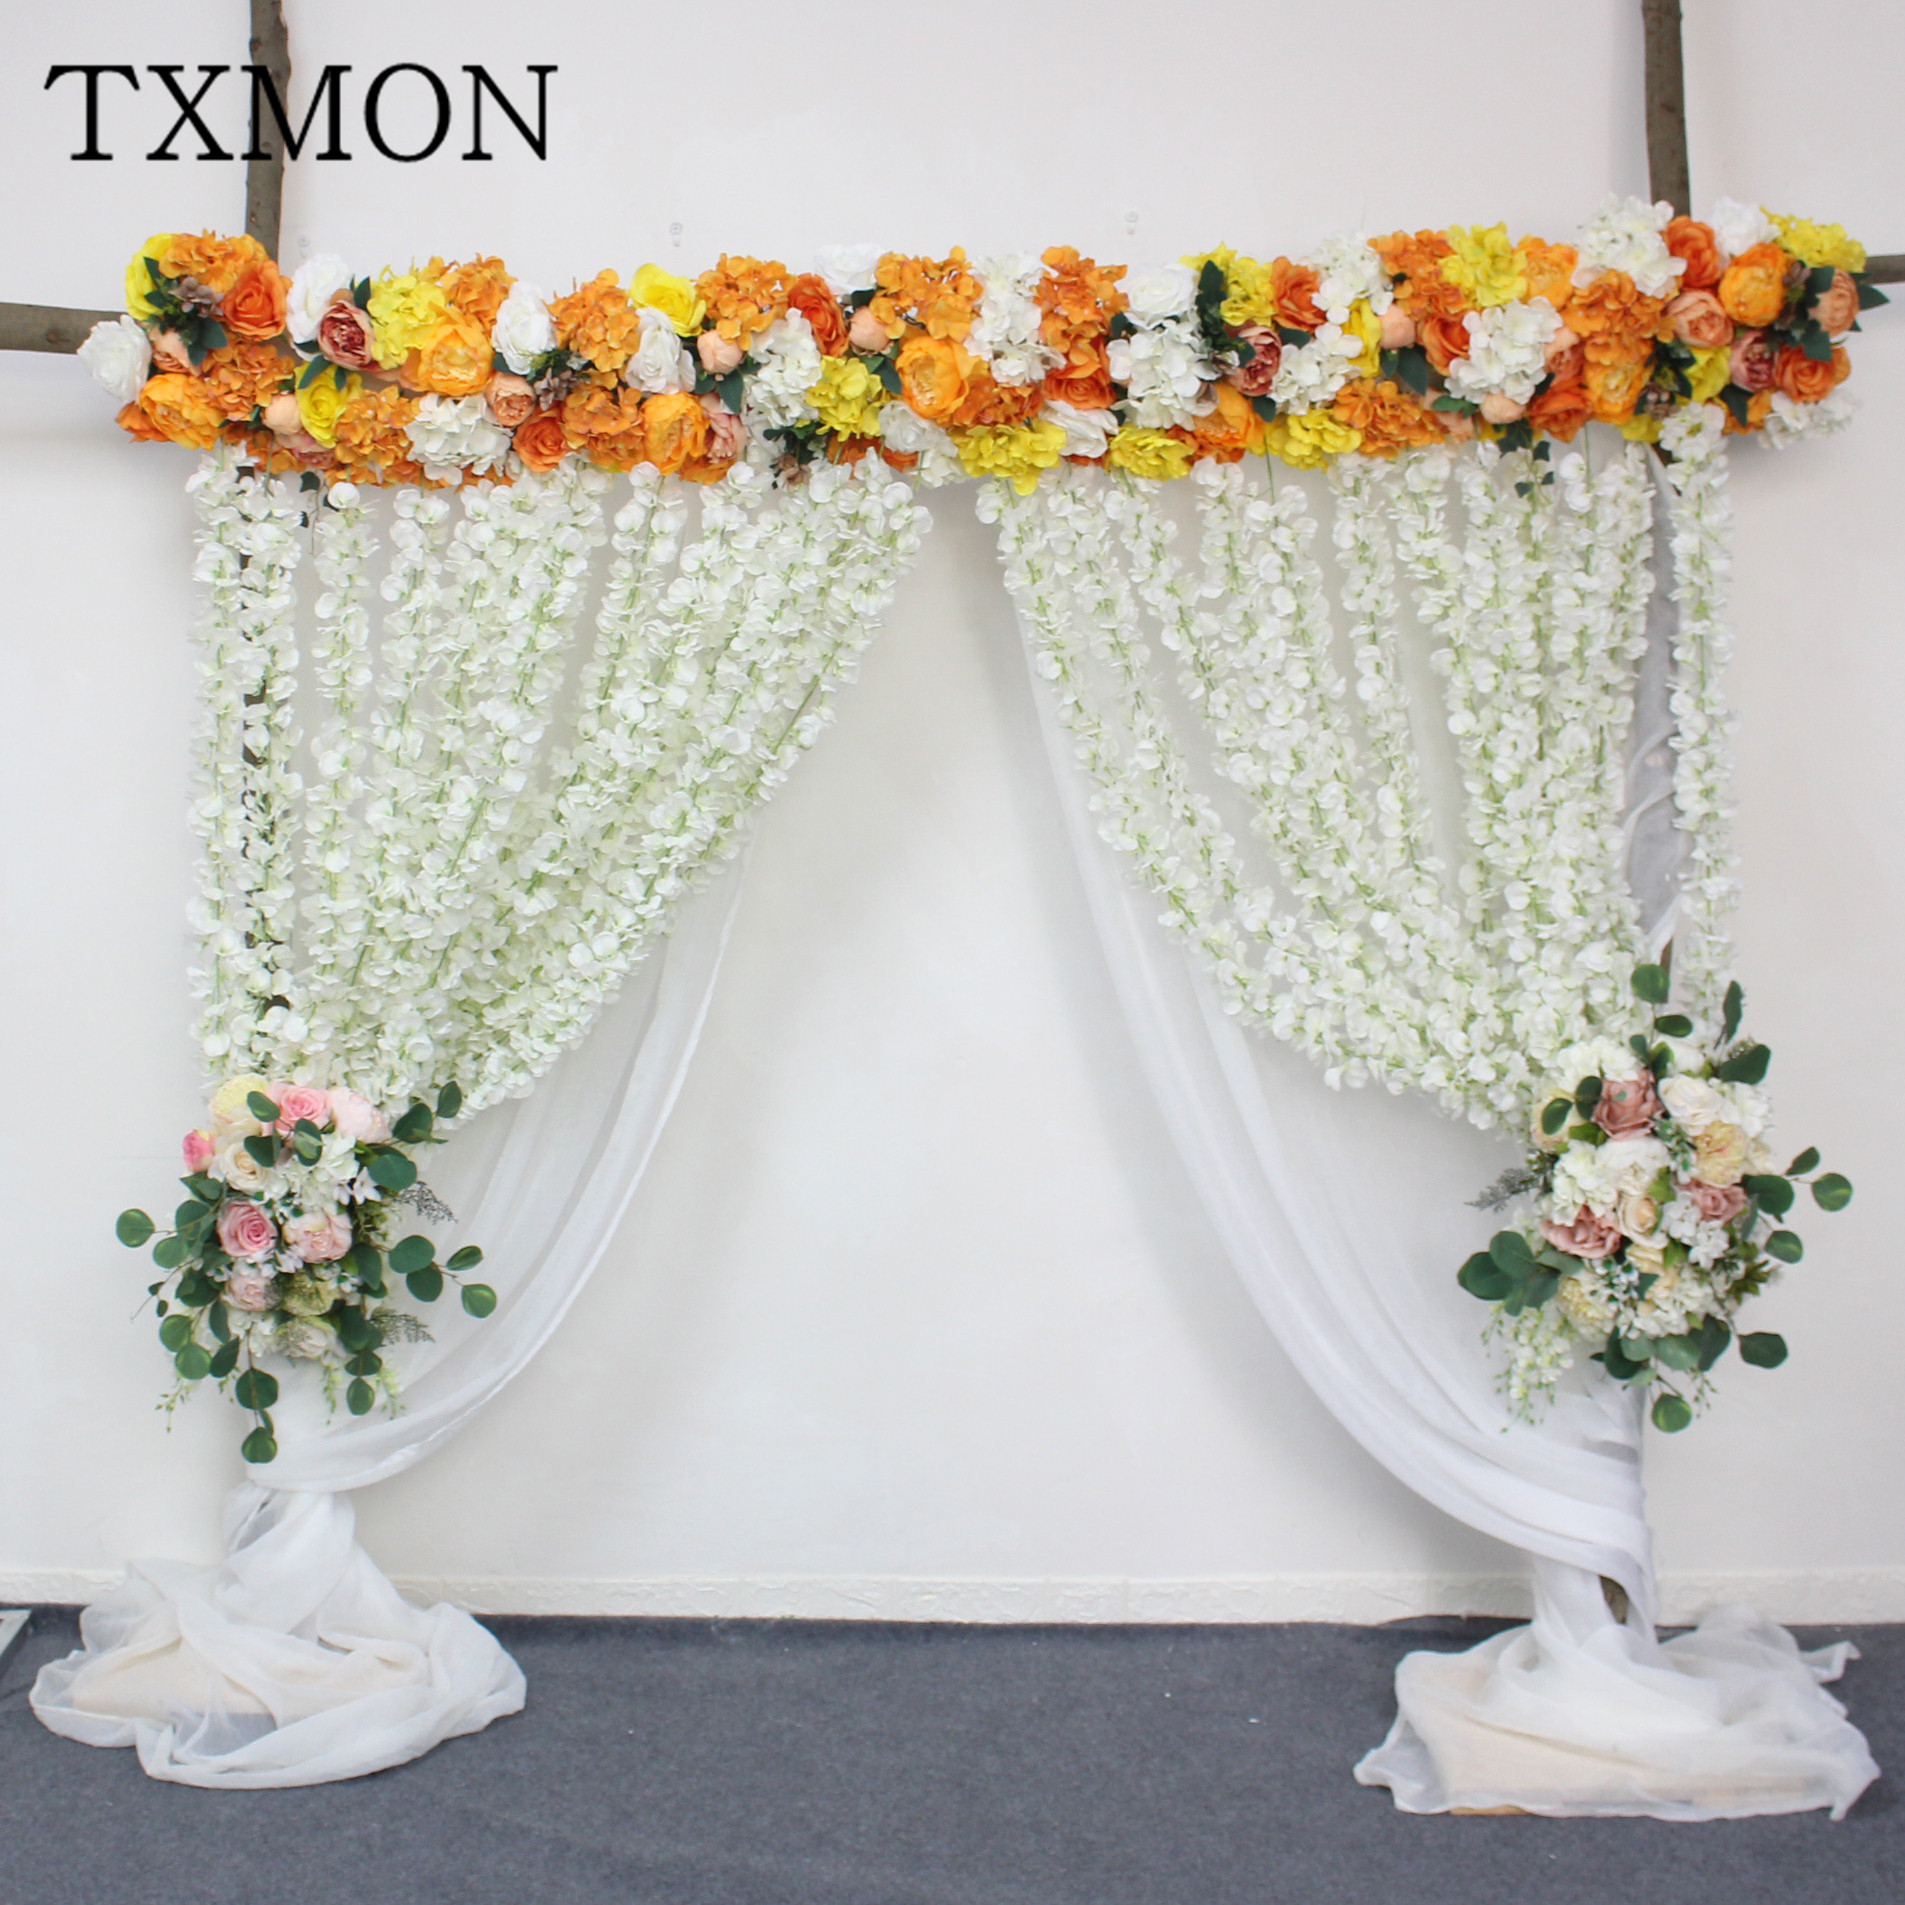 High-end custom 2m flower arrangement wedding props row flower simulation road lead flowers wall arch stage decoration placedHigh-end custom 2m flower arrangement wedding props row flower simulation road lead flowers wall arch stage decoration placed